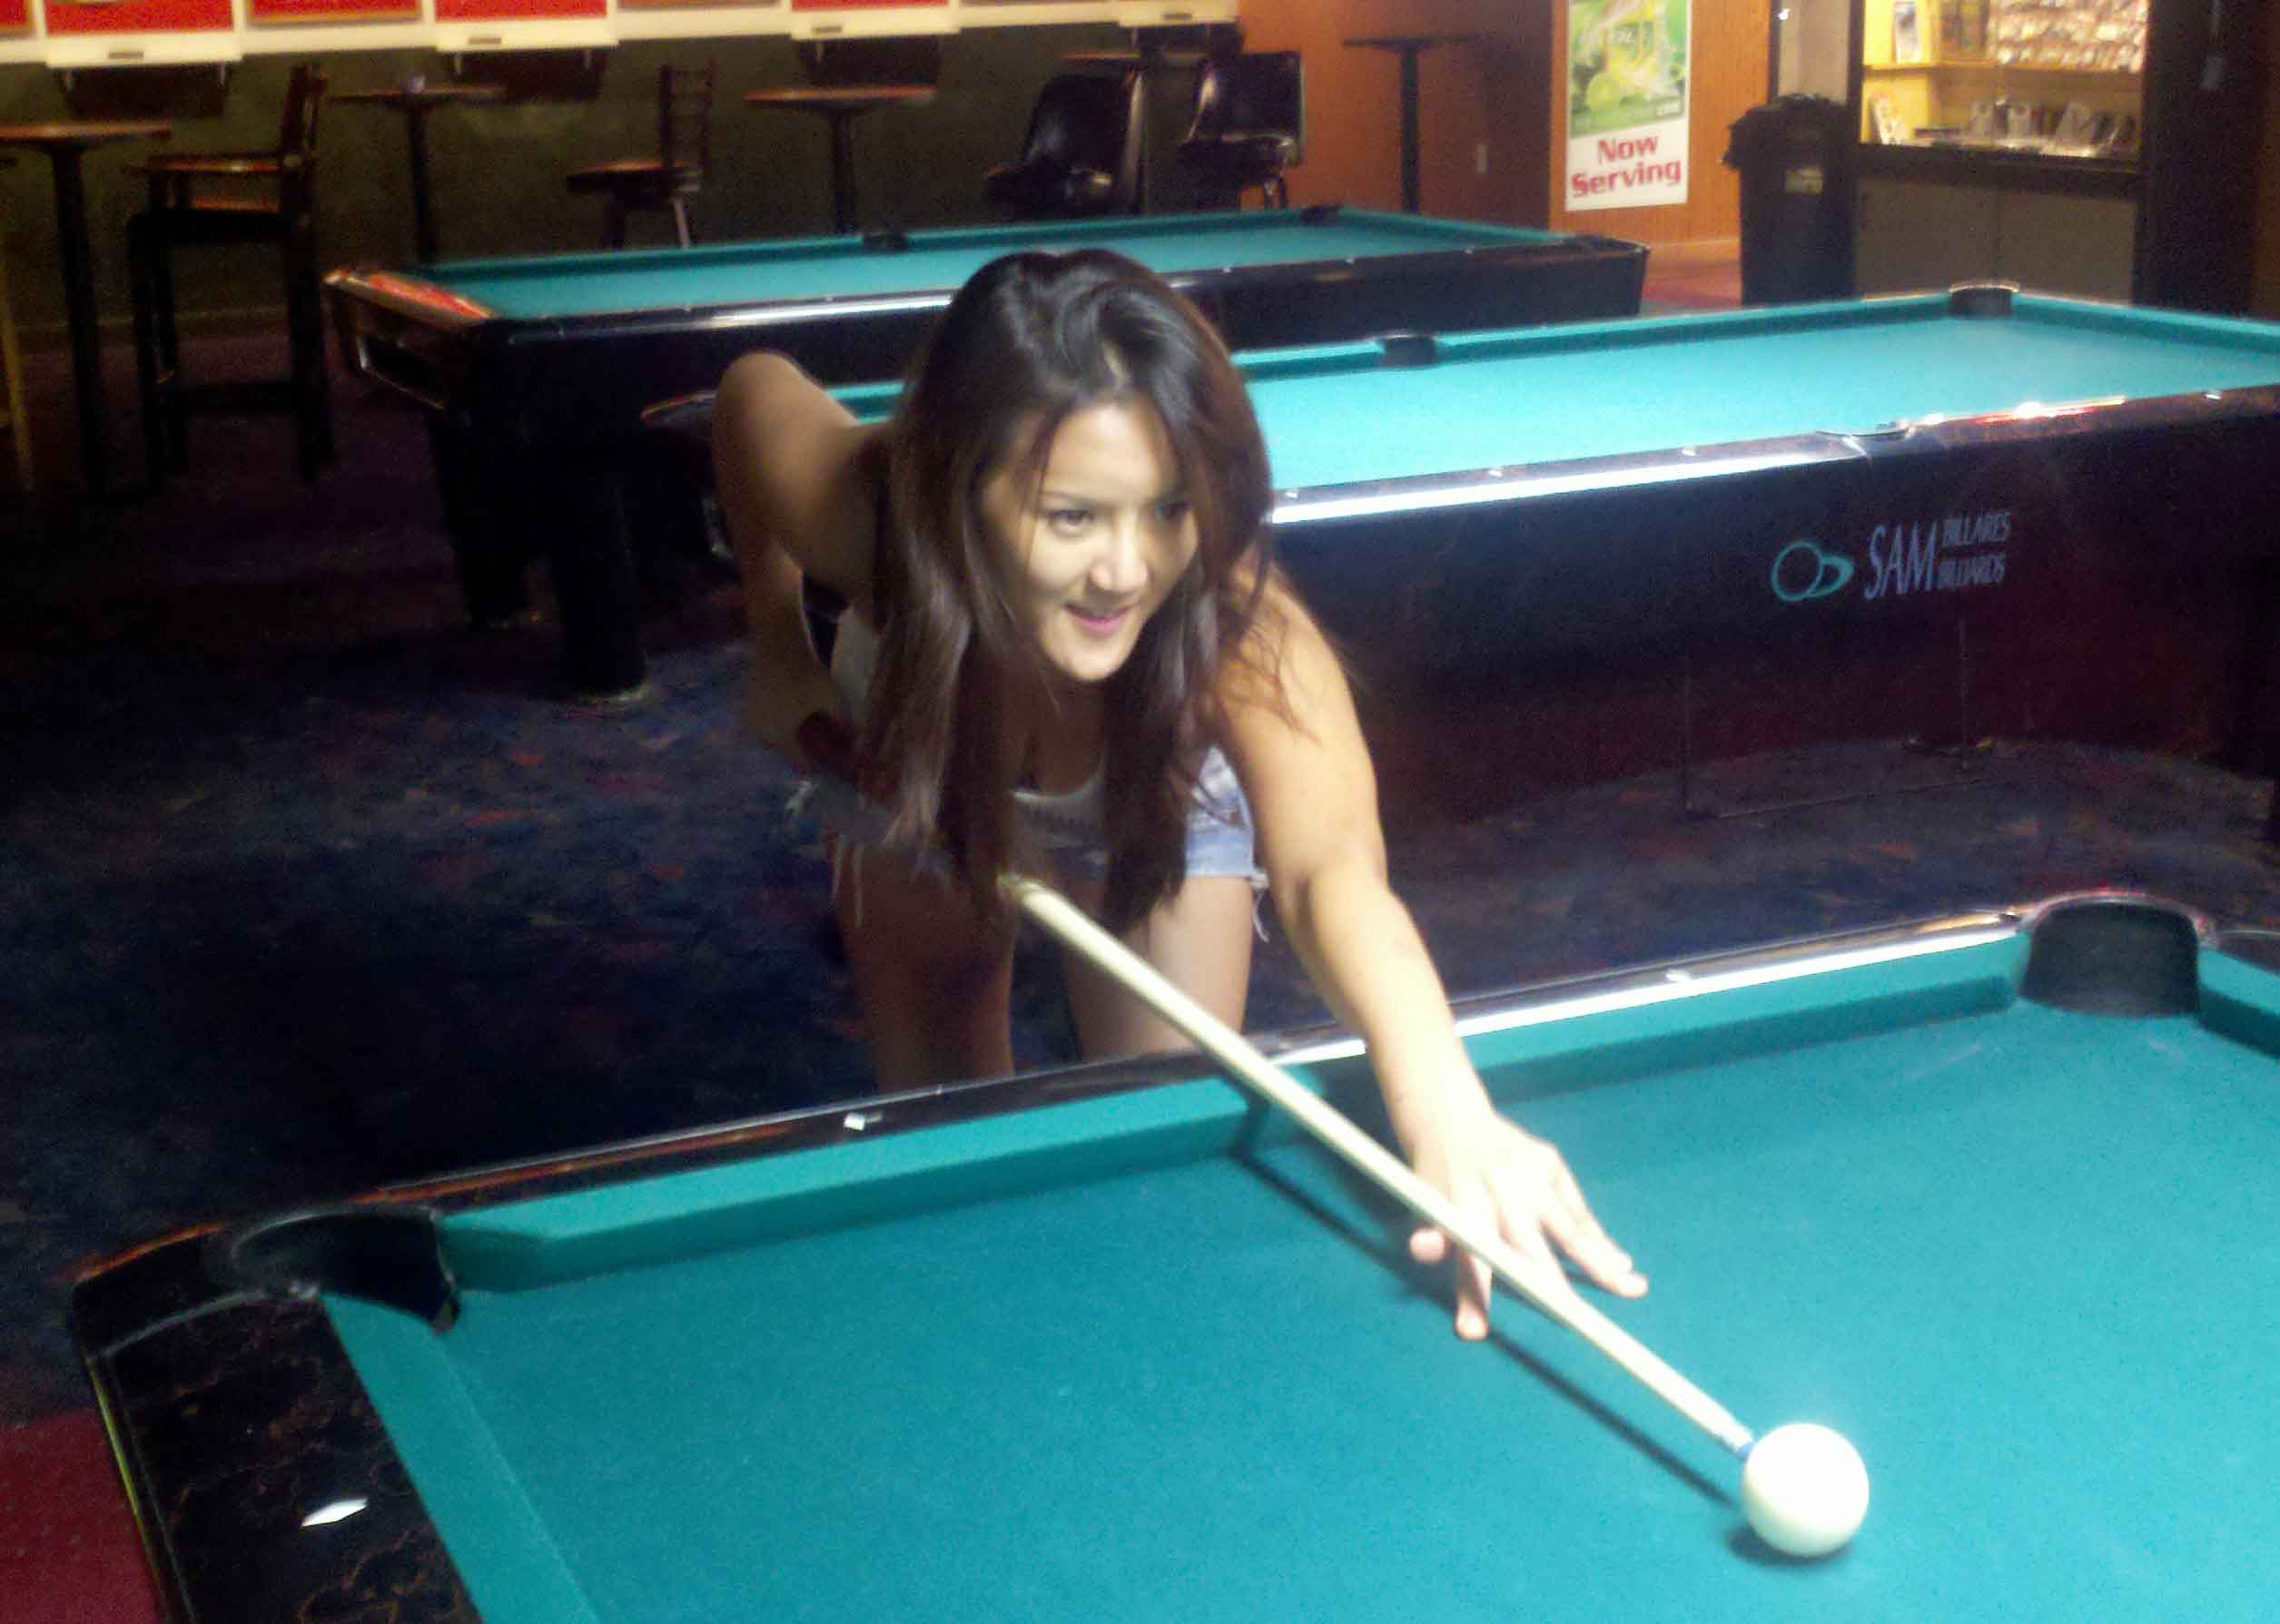 Cues Billiards Local Bar Restaurant Billiards And Pool Hall - Pool table rental atlanta